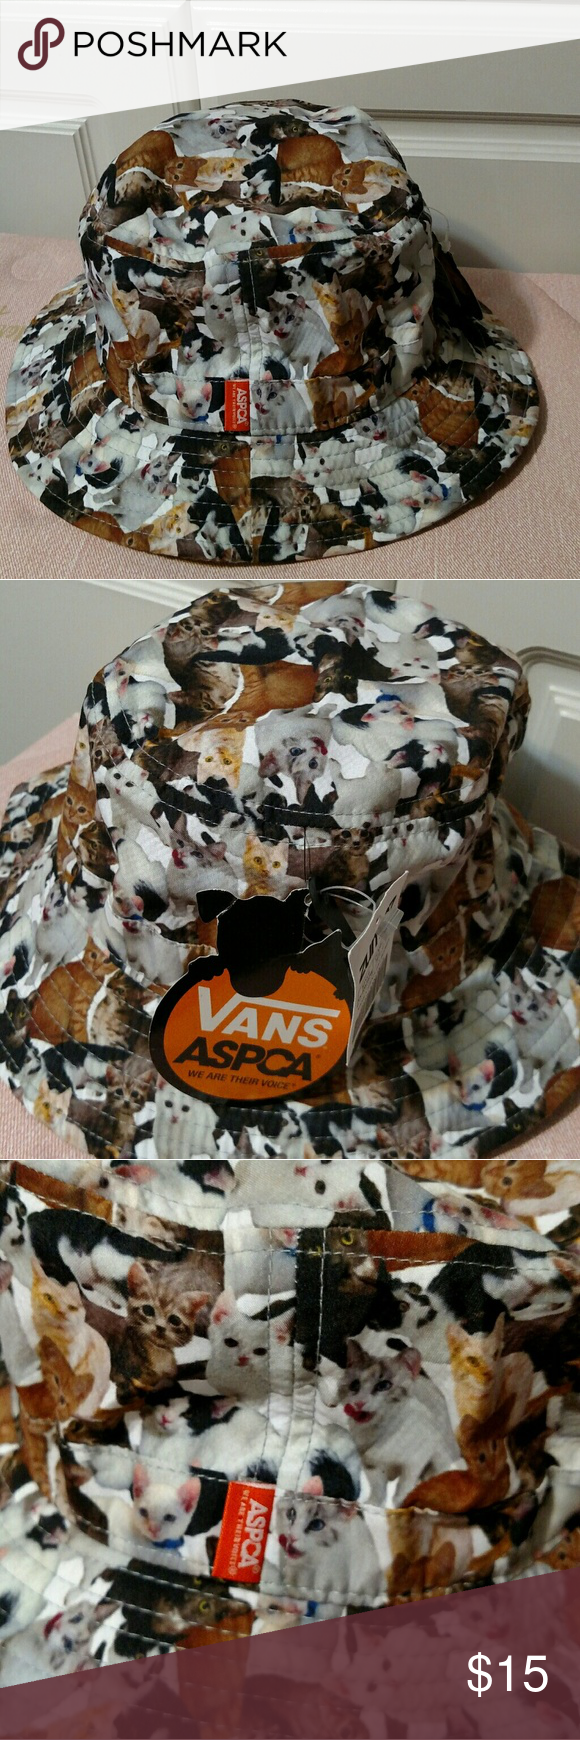 Vans x ASPCA Cat bucket Hat Brand New Vans USA animal humane society cats  bucket. Perfect for sunny hot day. Vans Accessories Hats a84197d8005